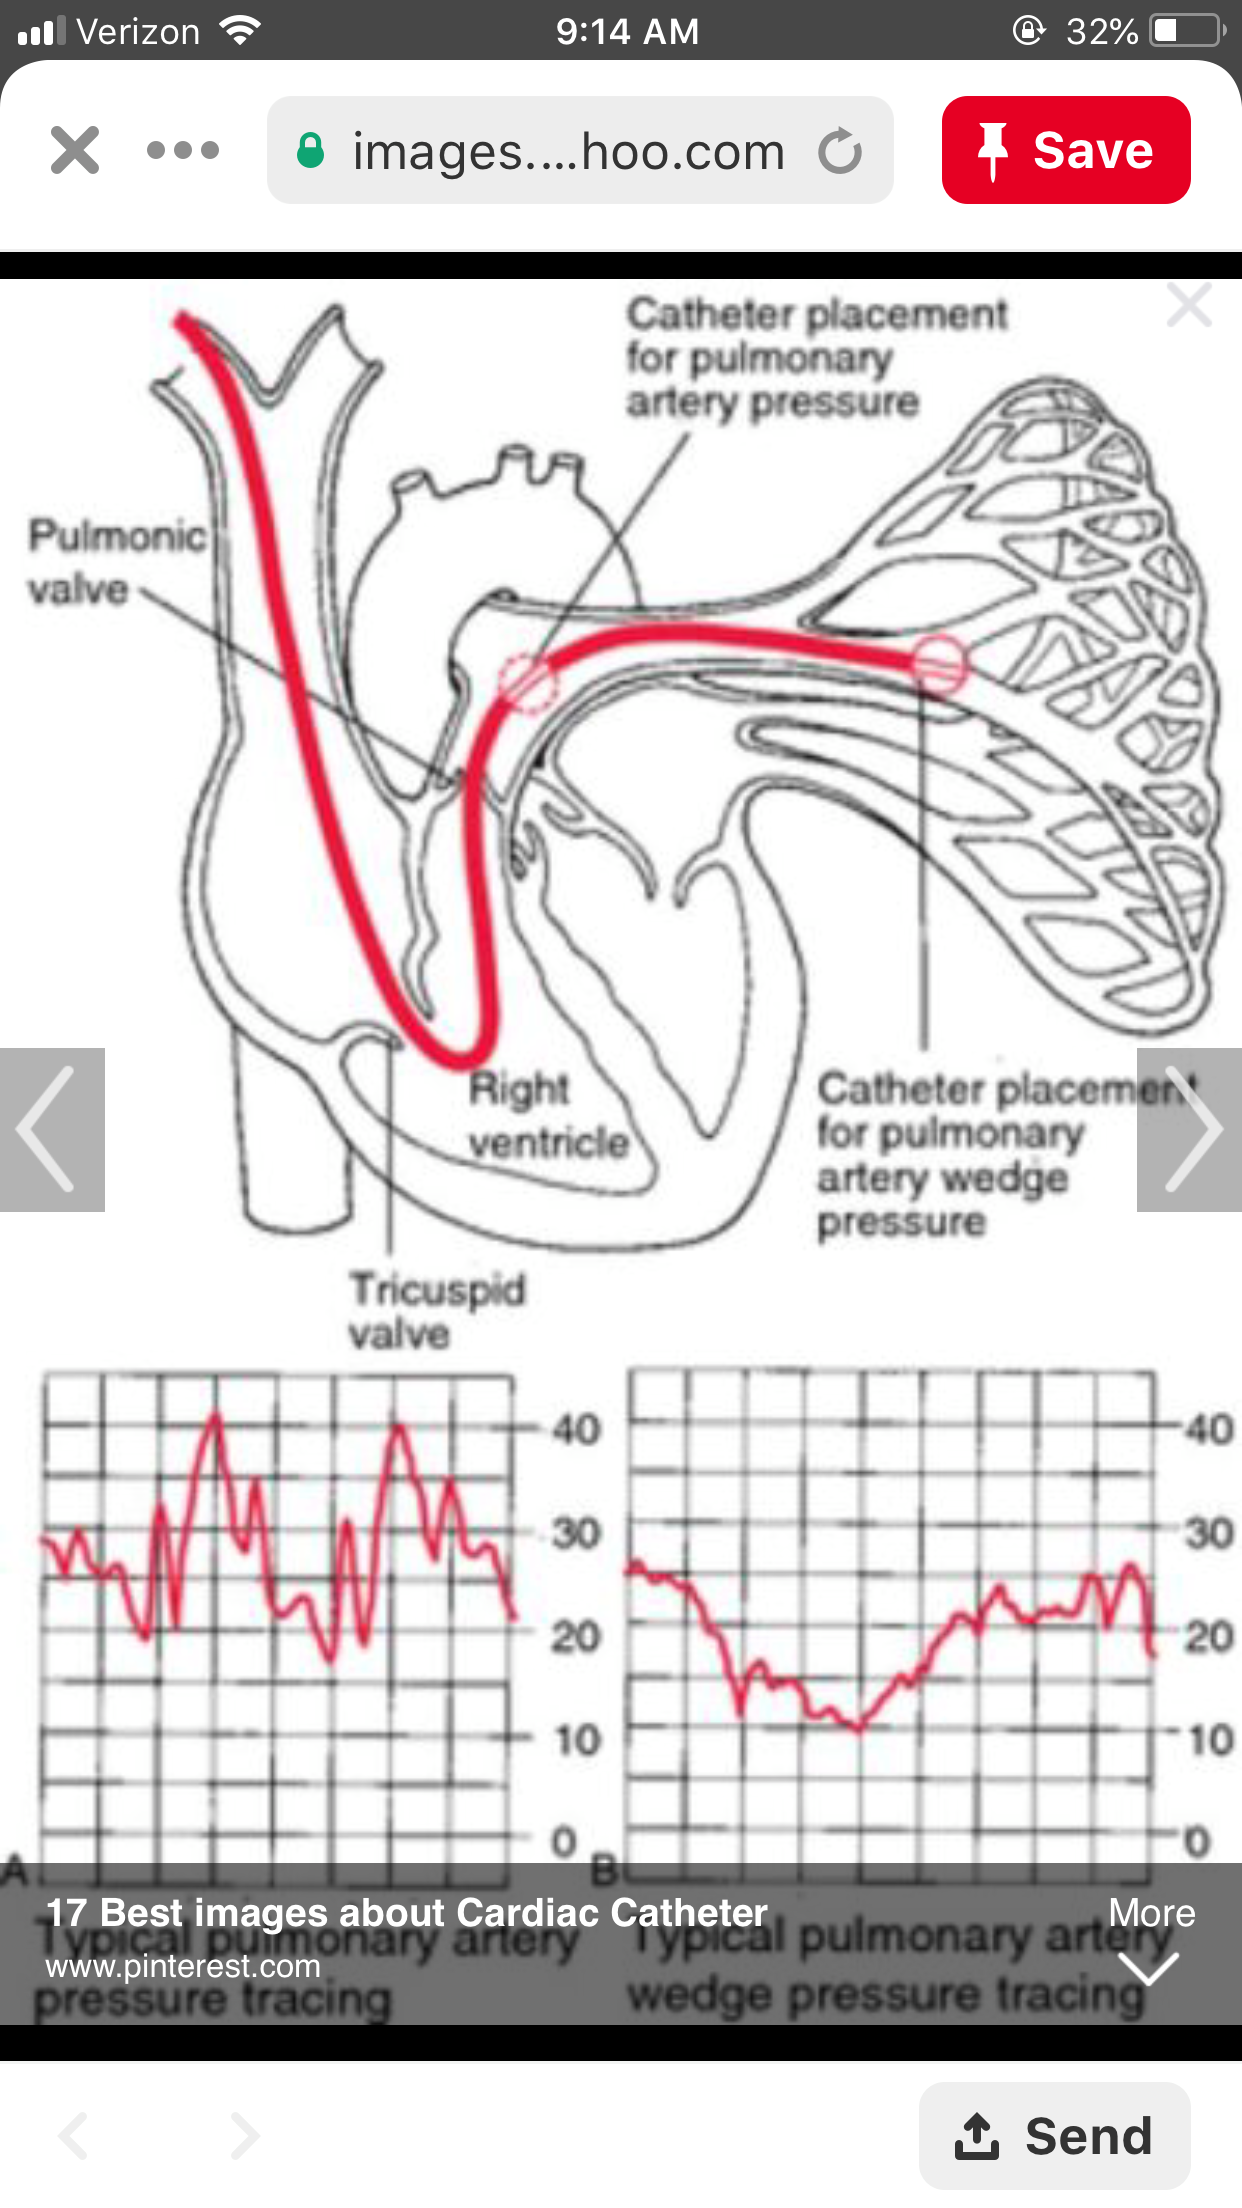 Pin by Angela Cheadle on Cardiac (With images) Critical